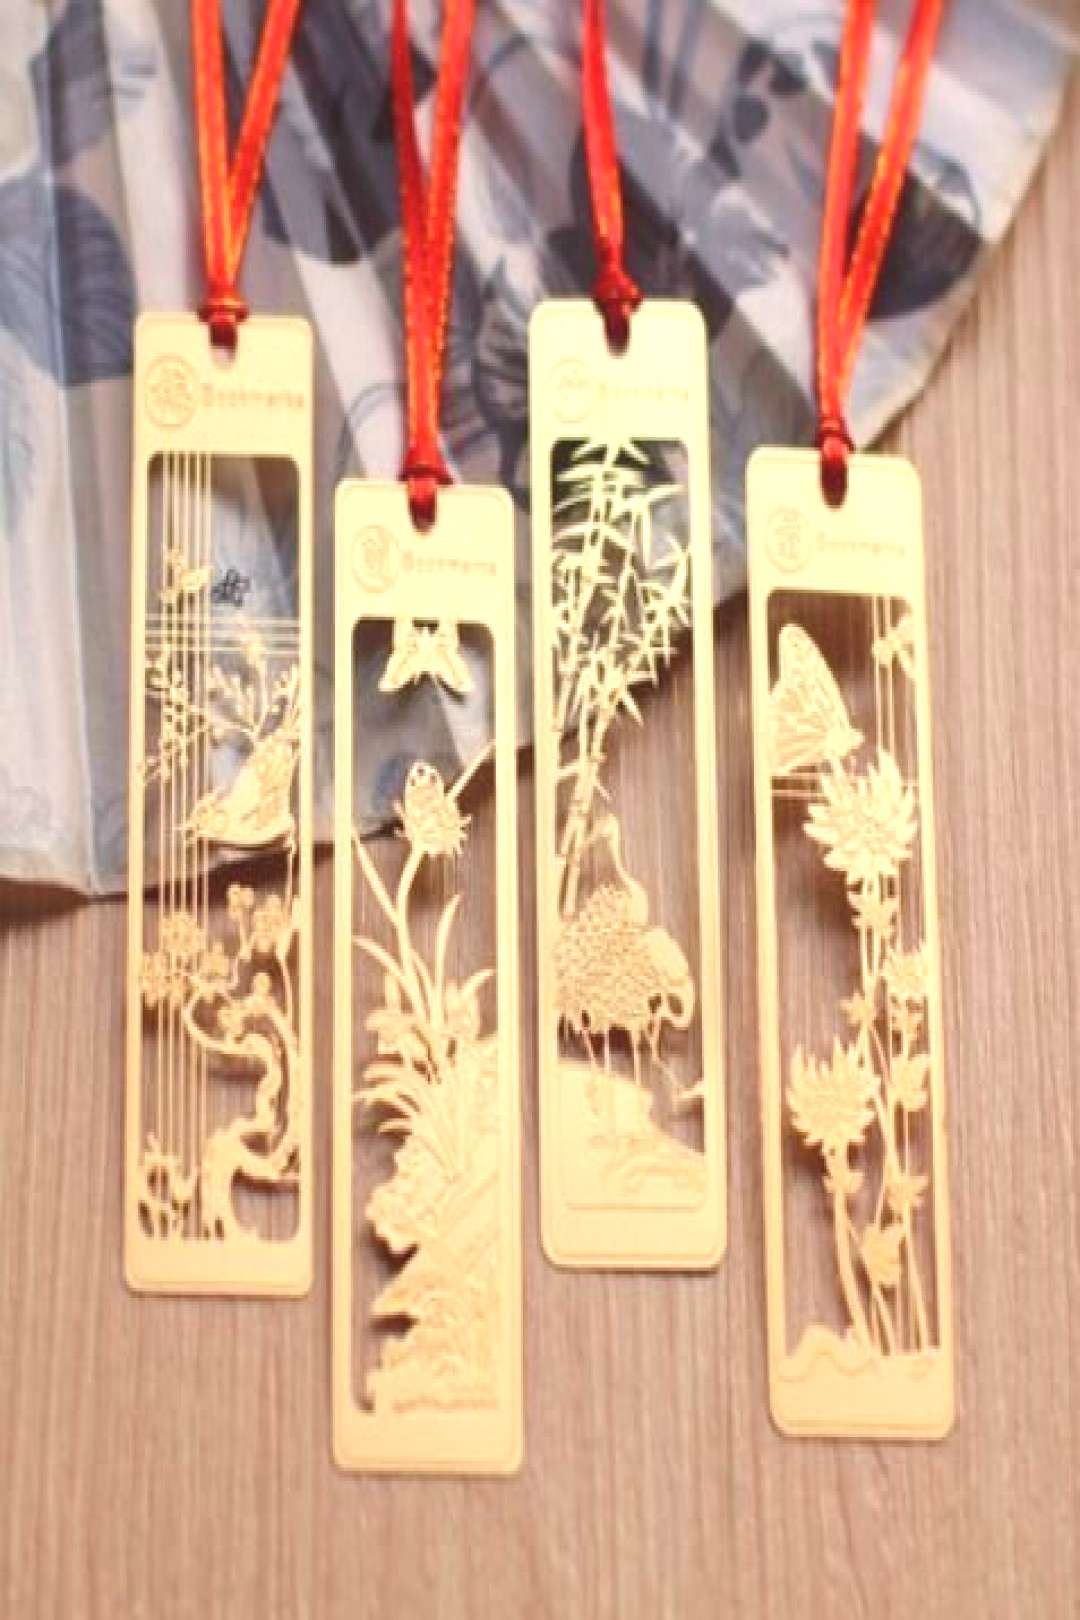 Cheap bookmark designs for kids, Buy Quality bookmark pen directly from China bookmark Suppliers: